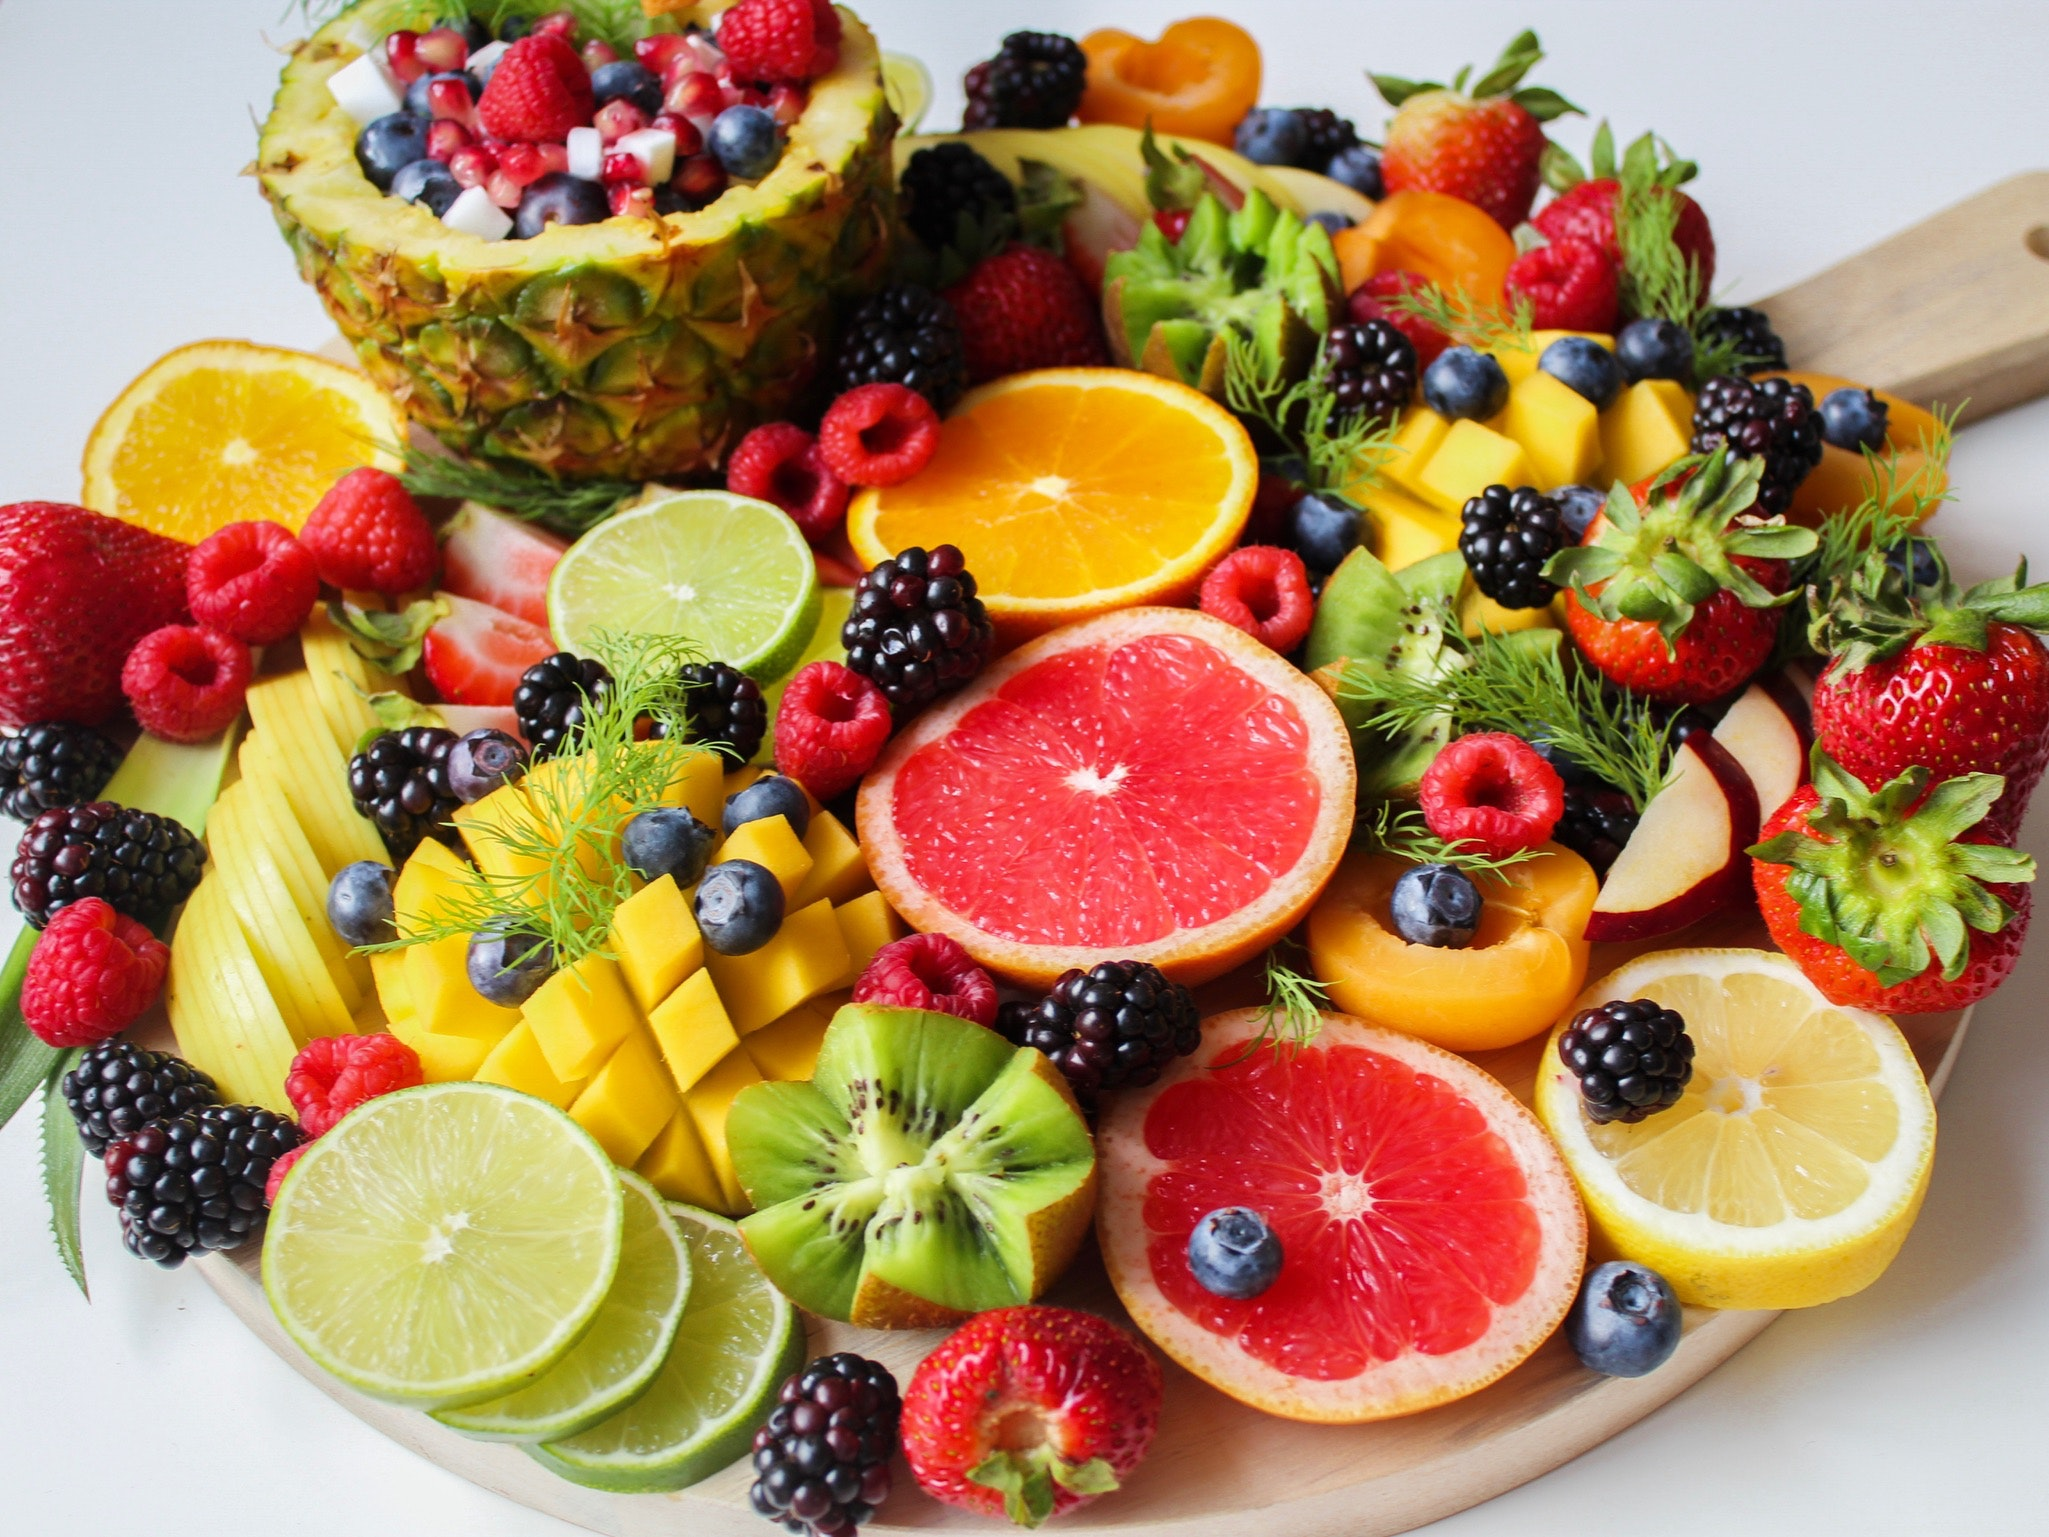 berries-citrus-citrus-fruits-1132047